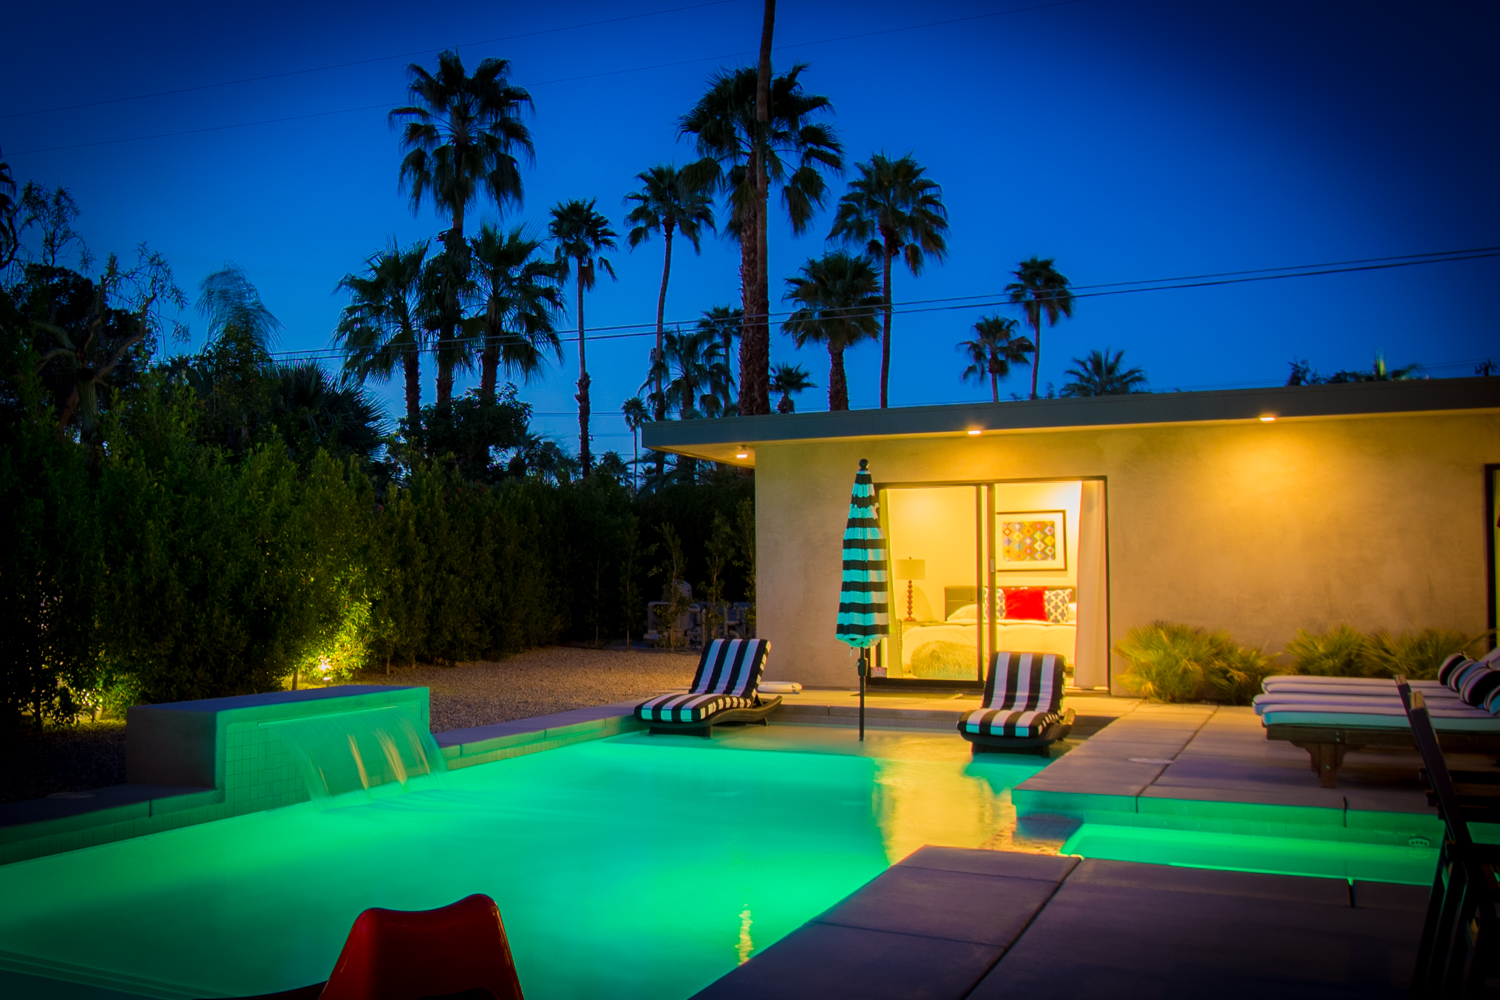 Palms-at-Park-Palm-Springs-Vacation-Rental-Home-83.jpg